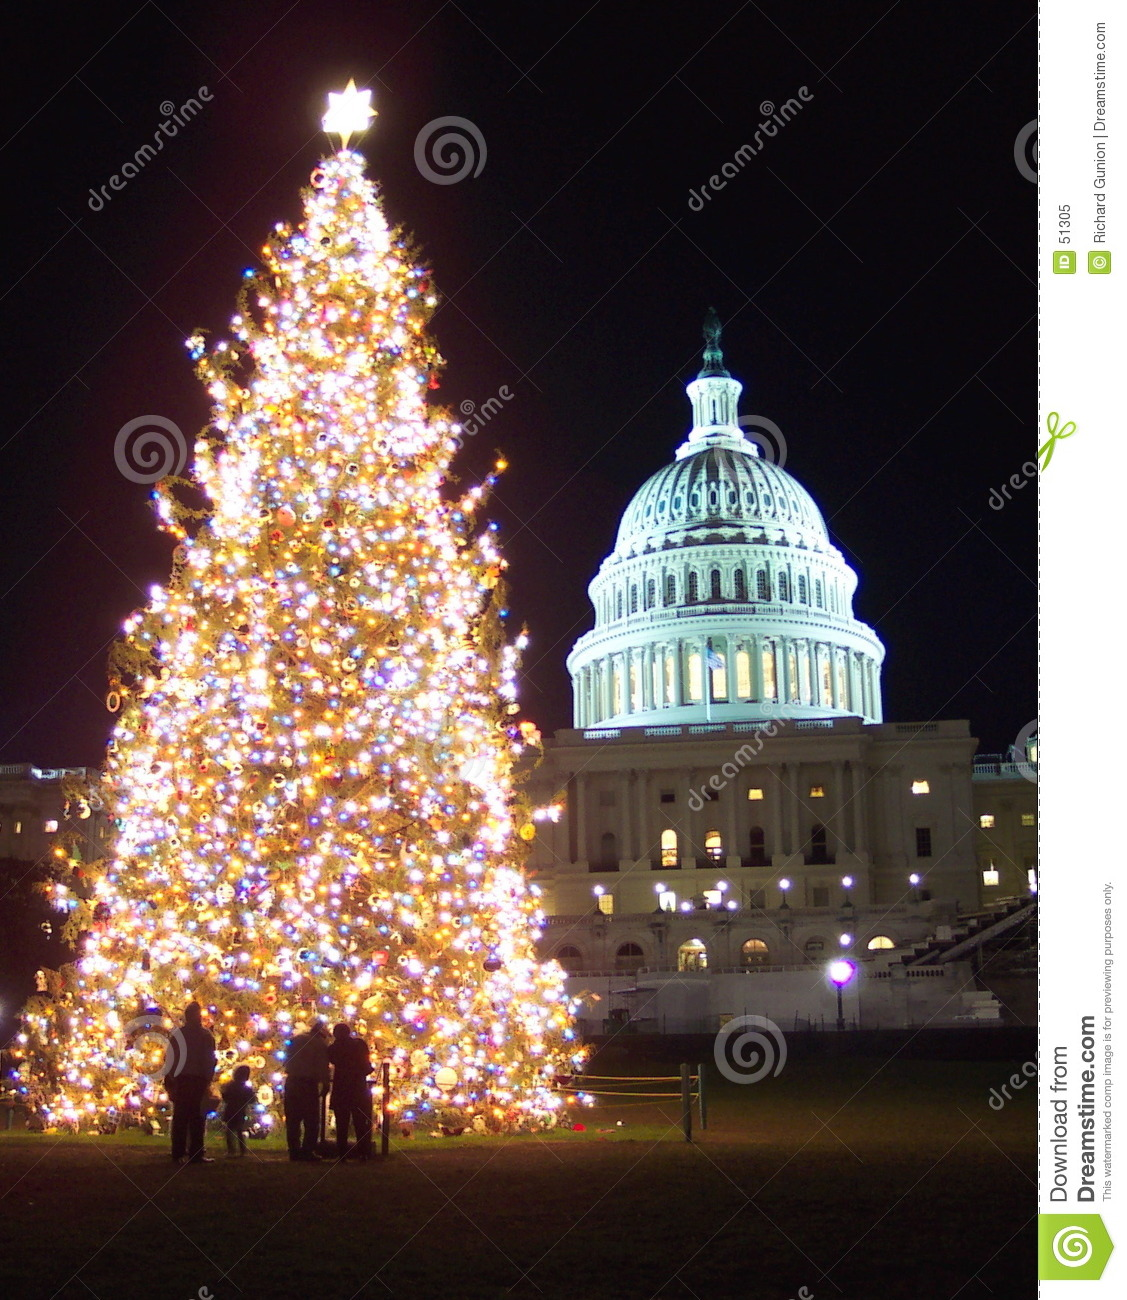 Christmas In Washington D.C. Royalty Free Stock Photo ...